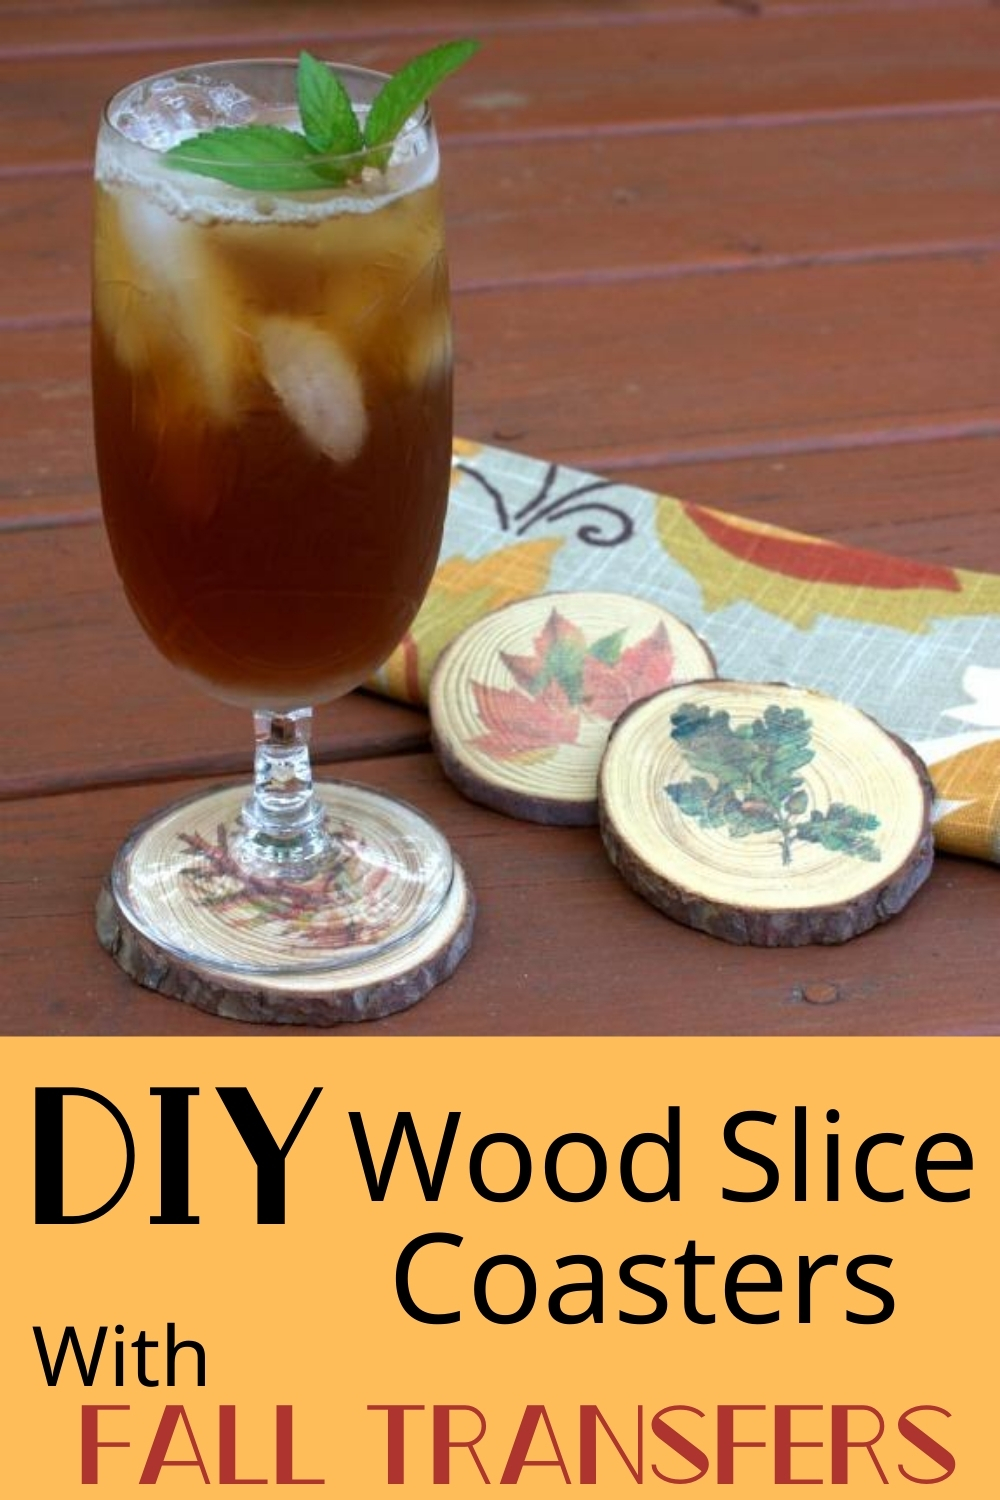 Learn how to make coasters using wood slices embellished with fall transfers. These coasters are useful and they are a unique home decor item for fall.  This is an easy craft and it makes a great gift!  #diycoaster #woodslice #fallcraft via @spaula